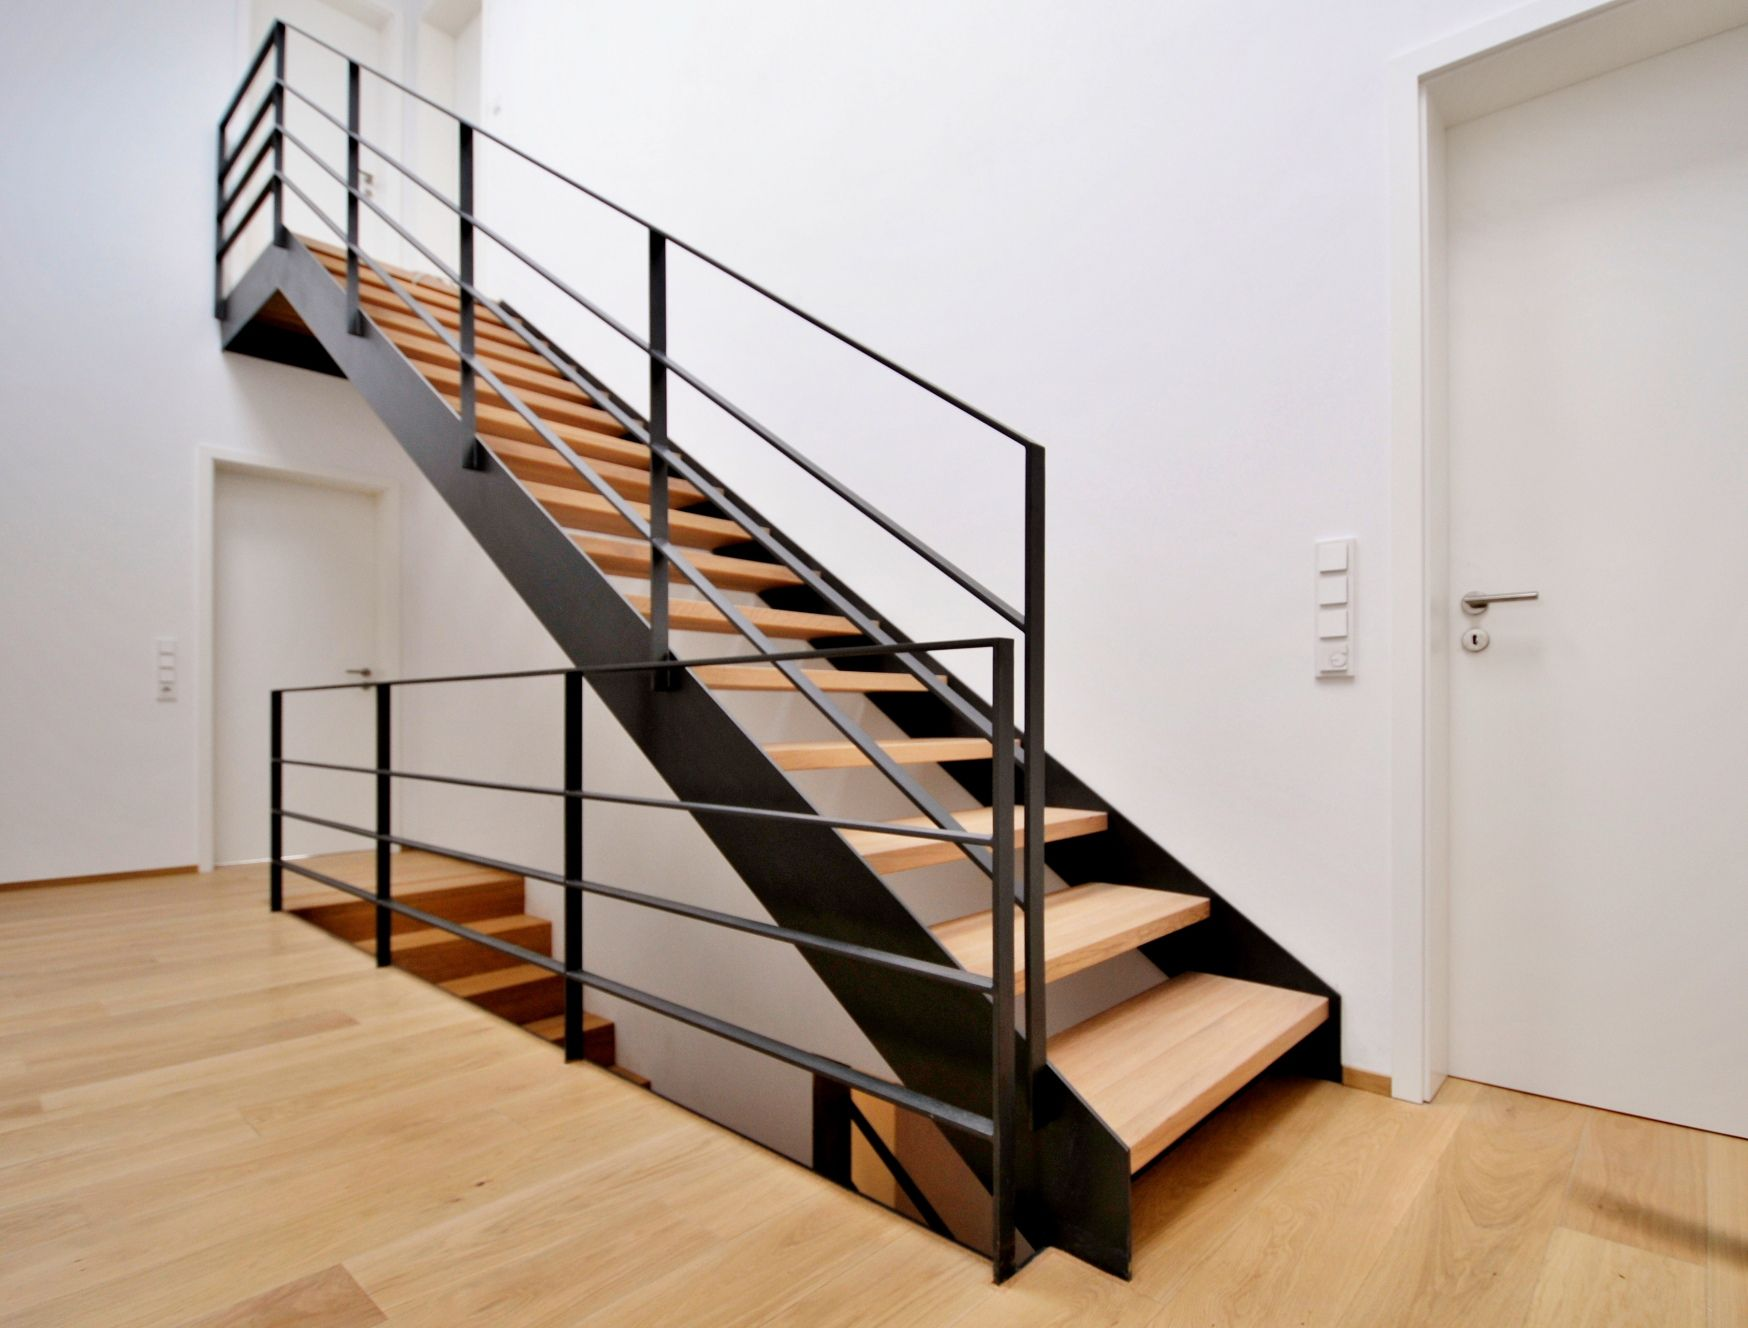 16 Treppe Ideen Treppe Treppe Haus Treppe Holz